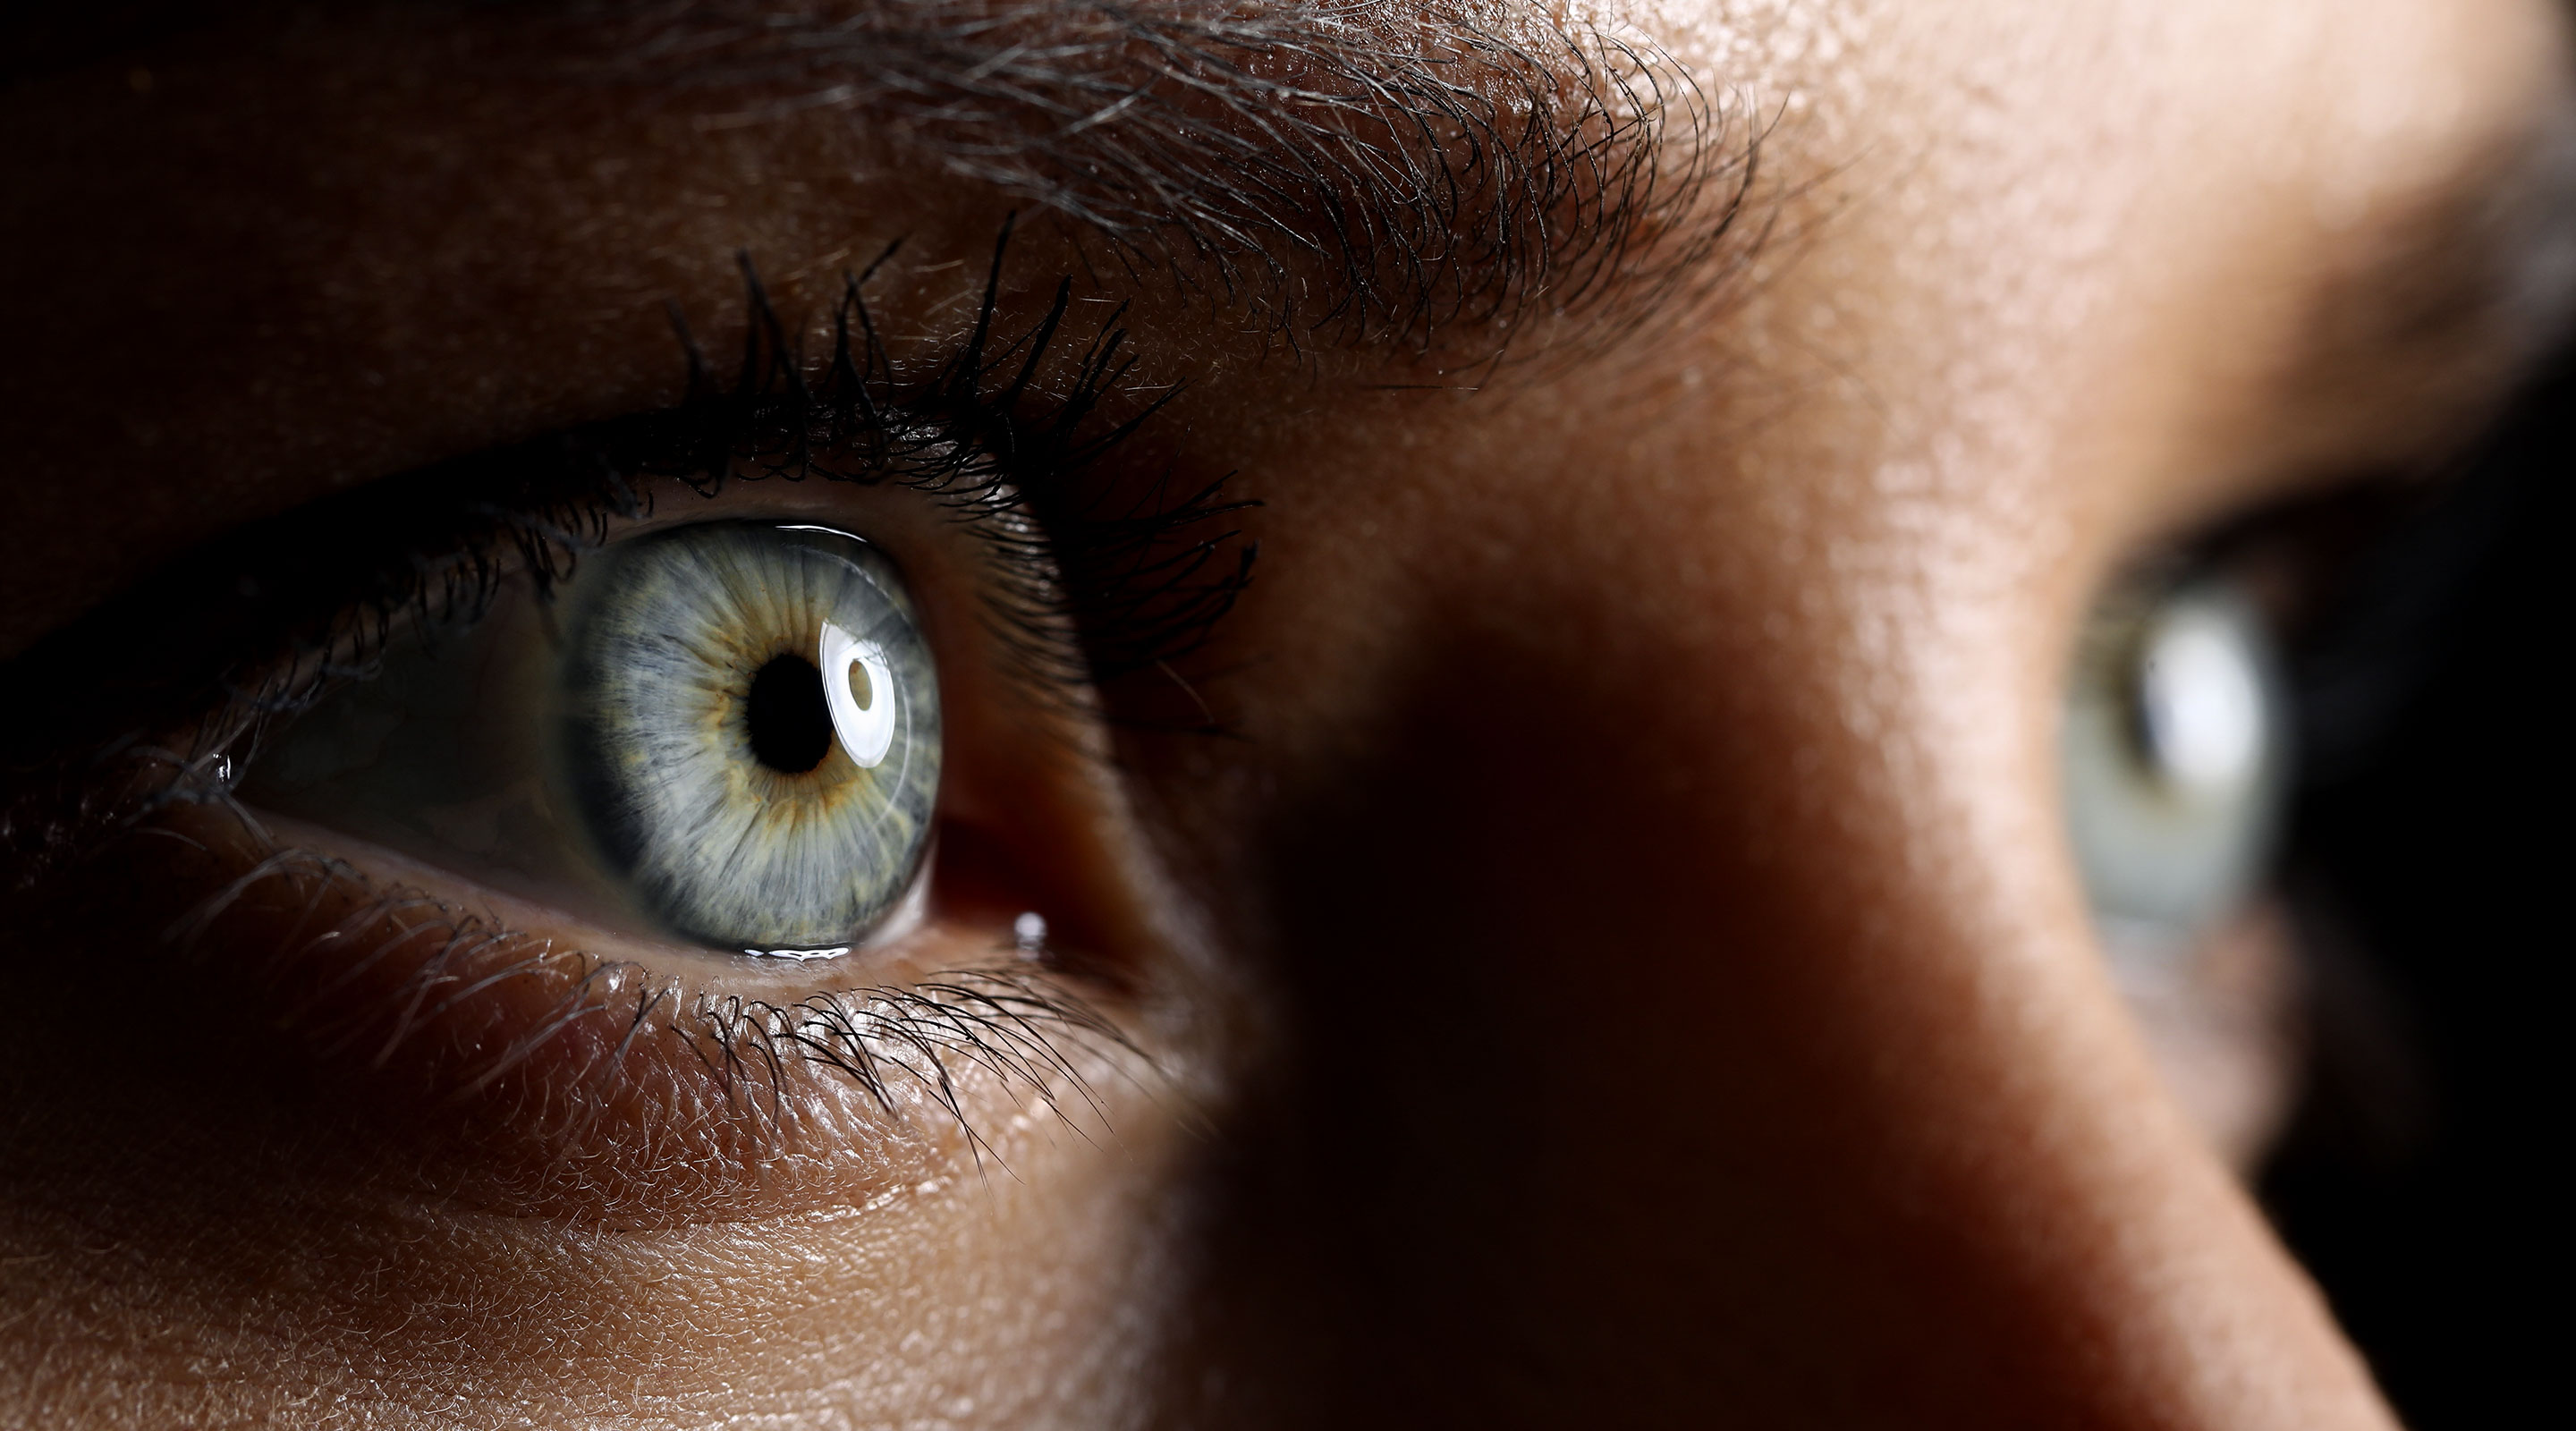 Close up of eyes focussing on the distance